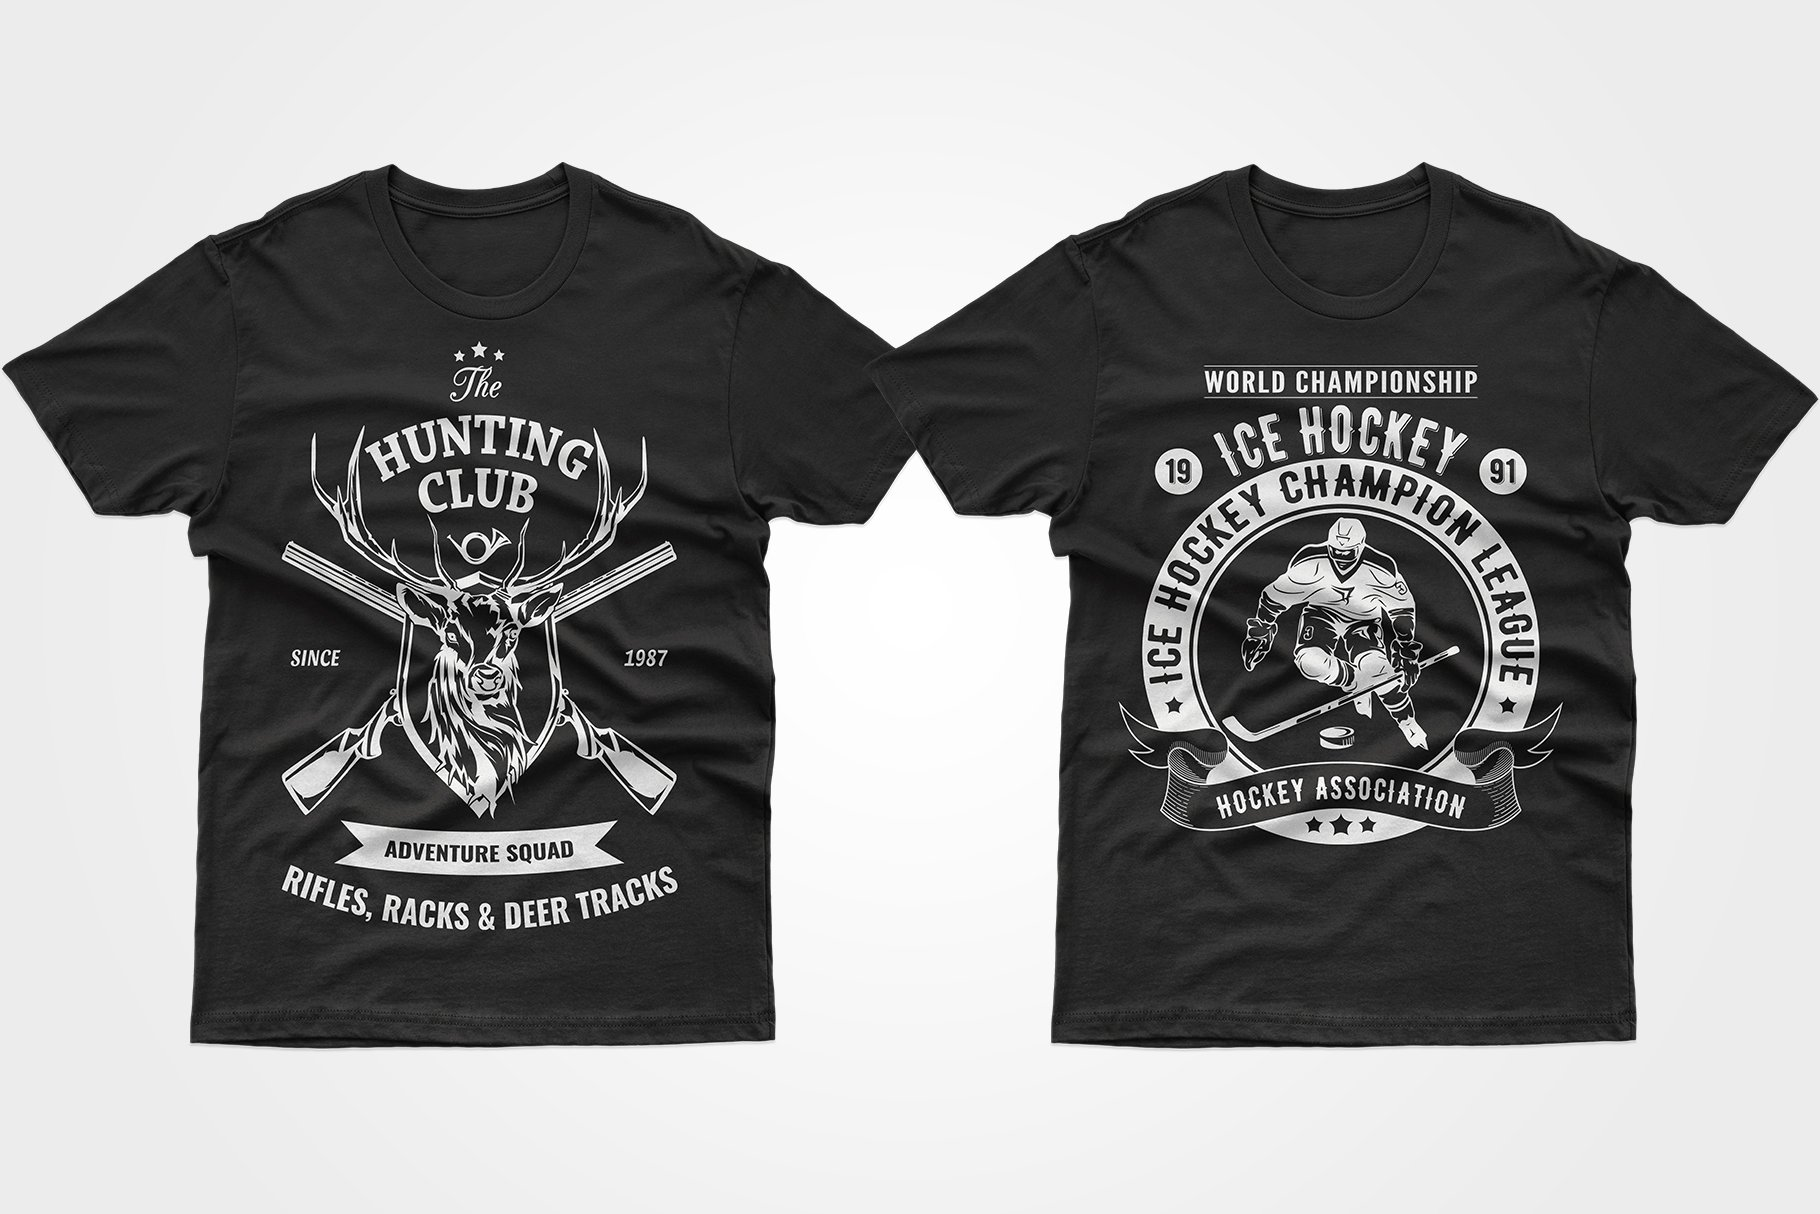 Two black T-shirts - one with a deer and a gun, the other with a playing hockey player.